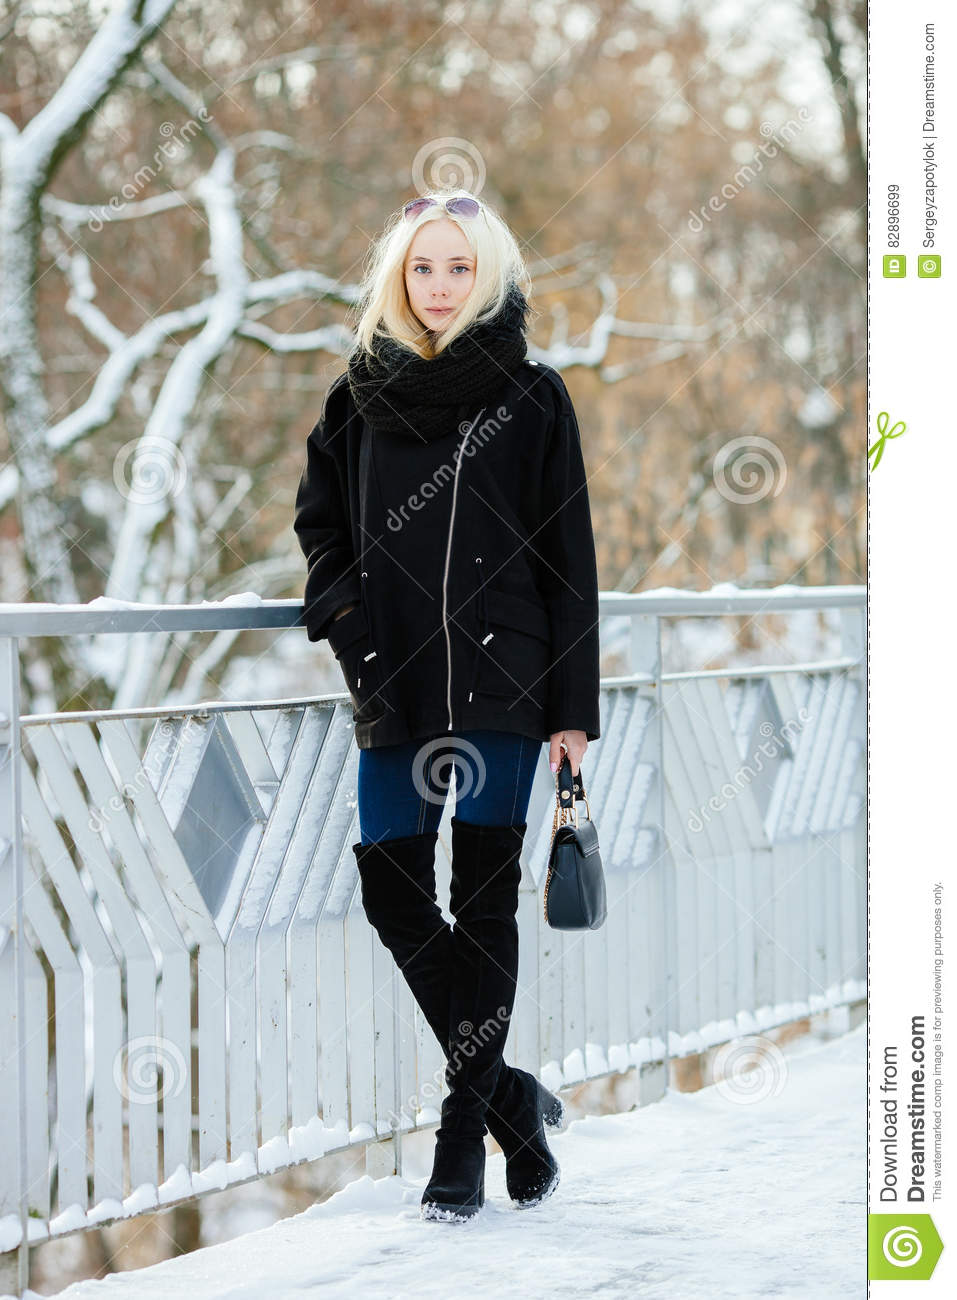 Winter portrait: young blonde woman dressed in a warm woolen jacket blue jeans long boots posing outside in a snowy city park